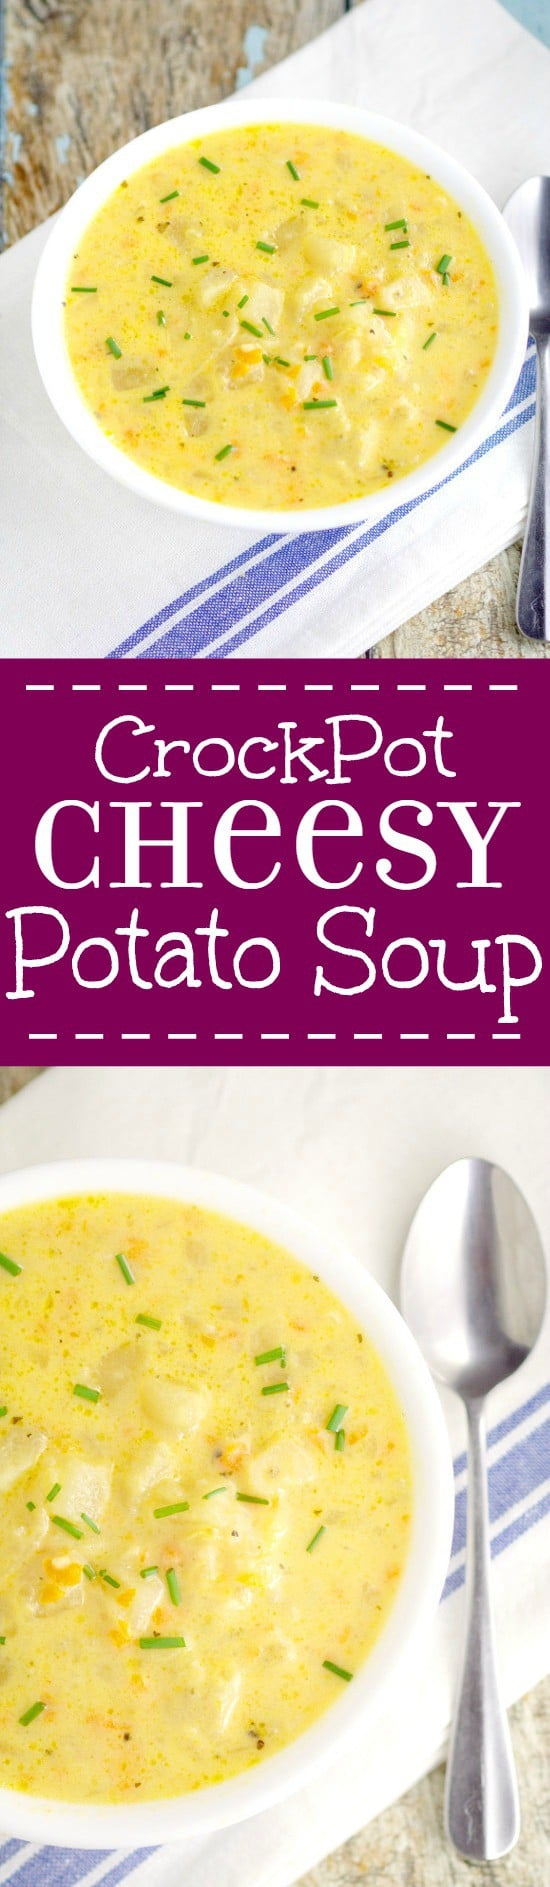 Crockpot Cheesy Potato Souprecipe is a warm classic potato soup recipe with tender potatoes, gooey cheese, and lots of creamy flavor. Serve with warm crusty bread for the perfect dinner. Mmm... Looks amazing!